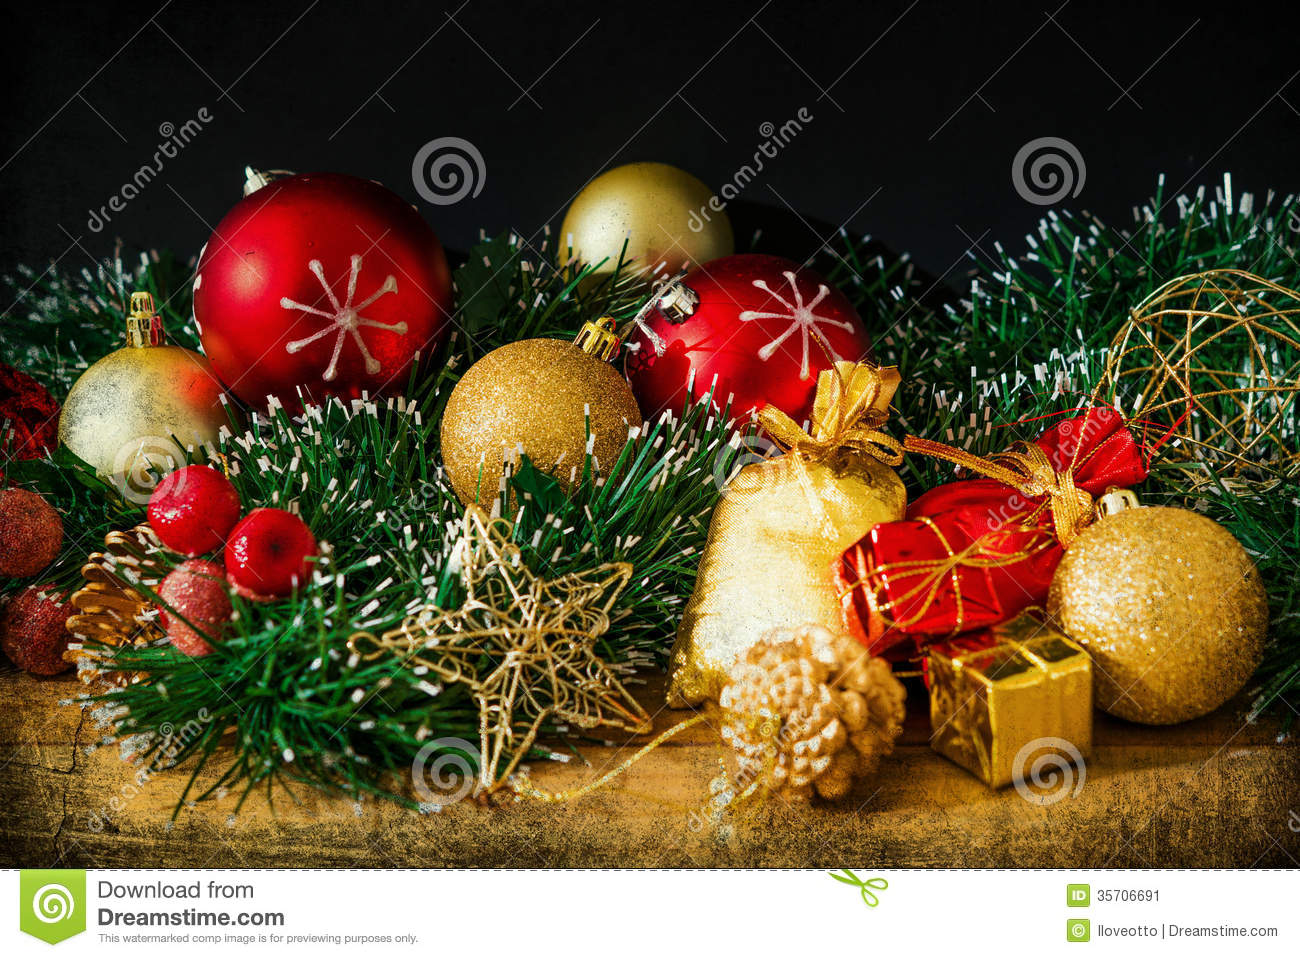 download old fashioned christmas decoration stock image image of light plant 35706691 - Old Time Christmas Decorations